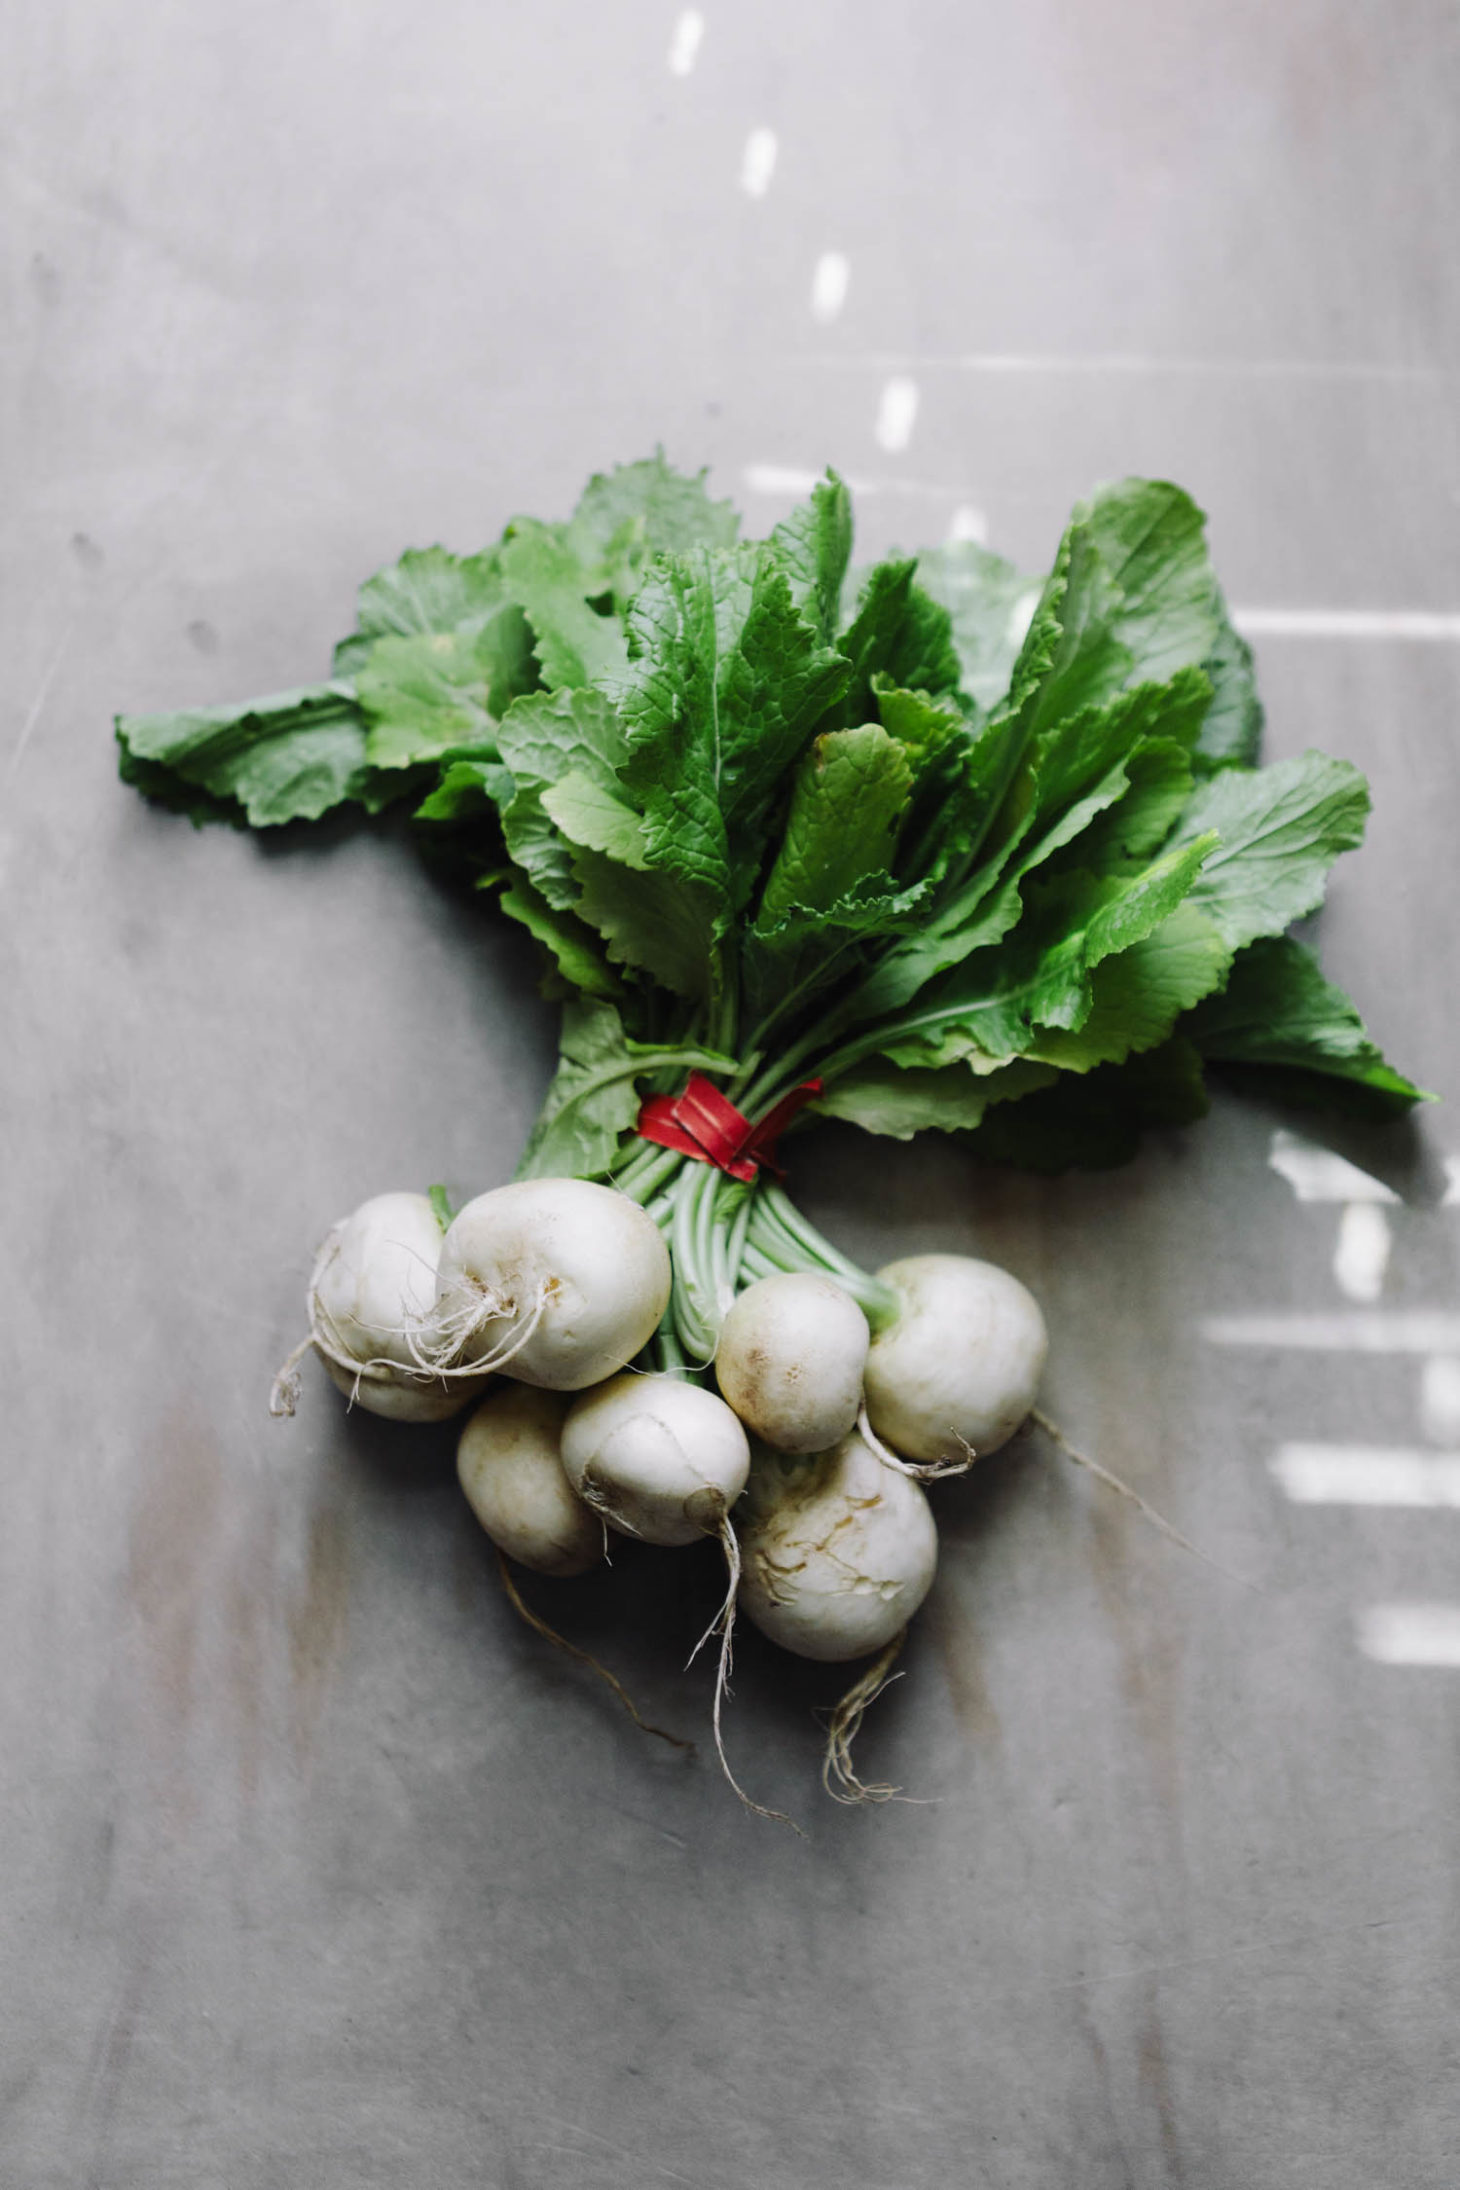 Overhead shot of Hakurei Turnips, a smaller, white variety of turnips